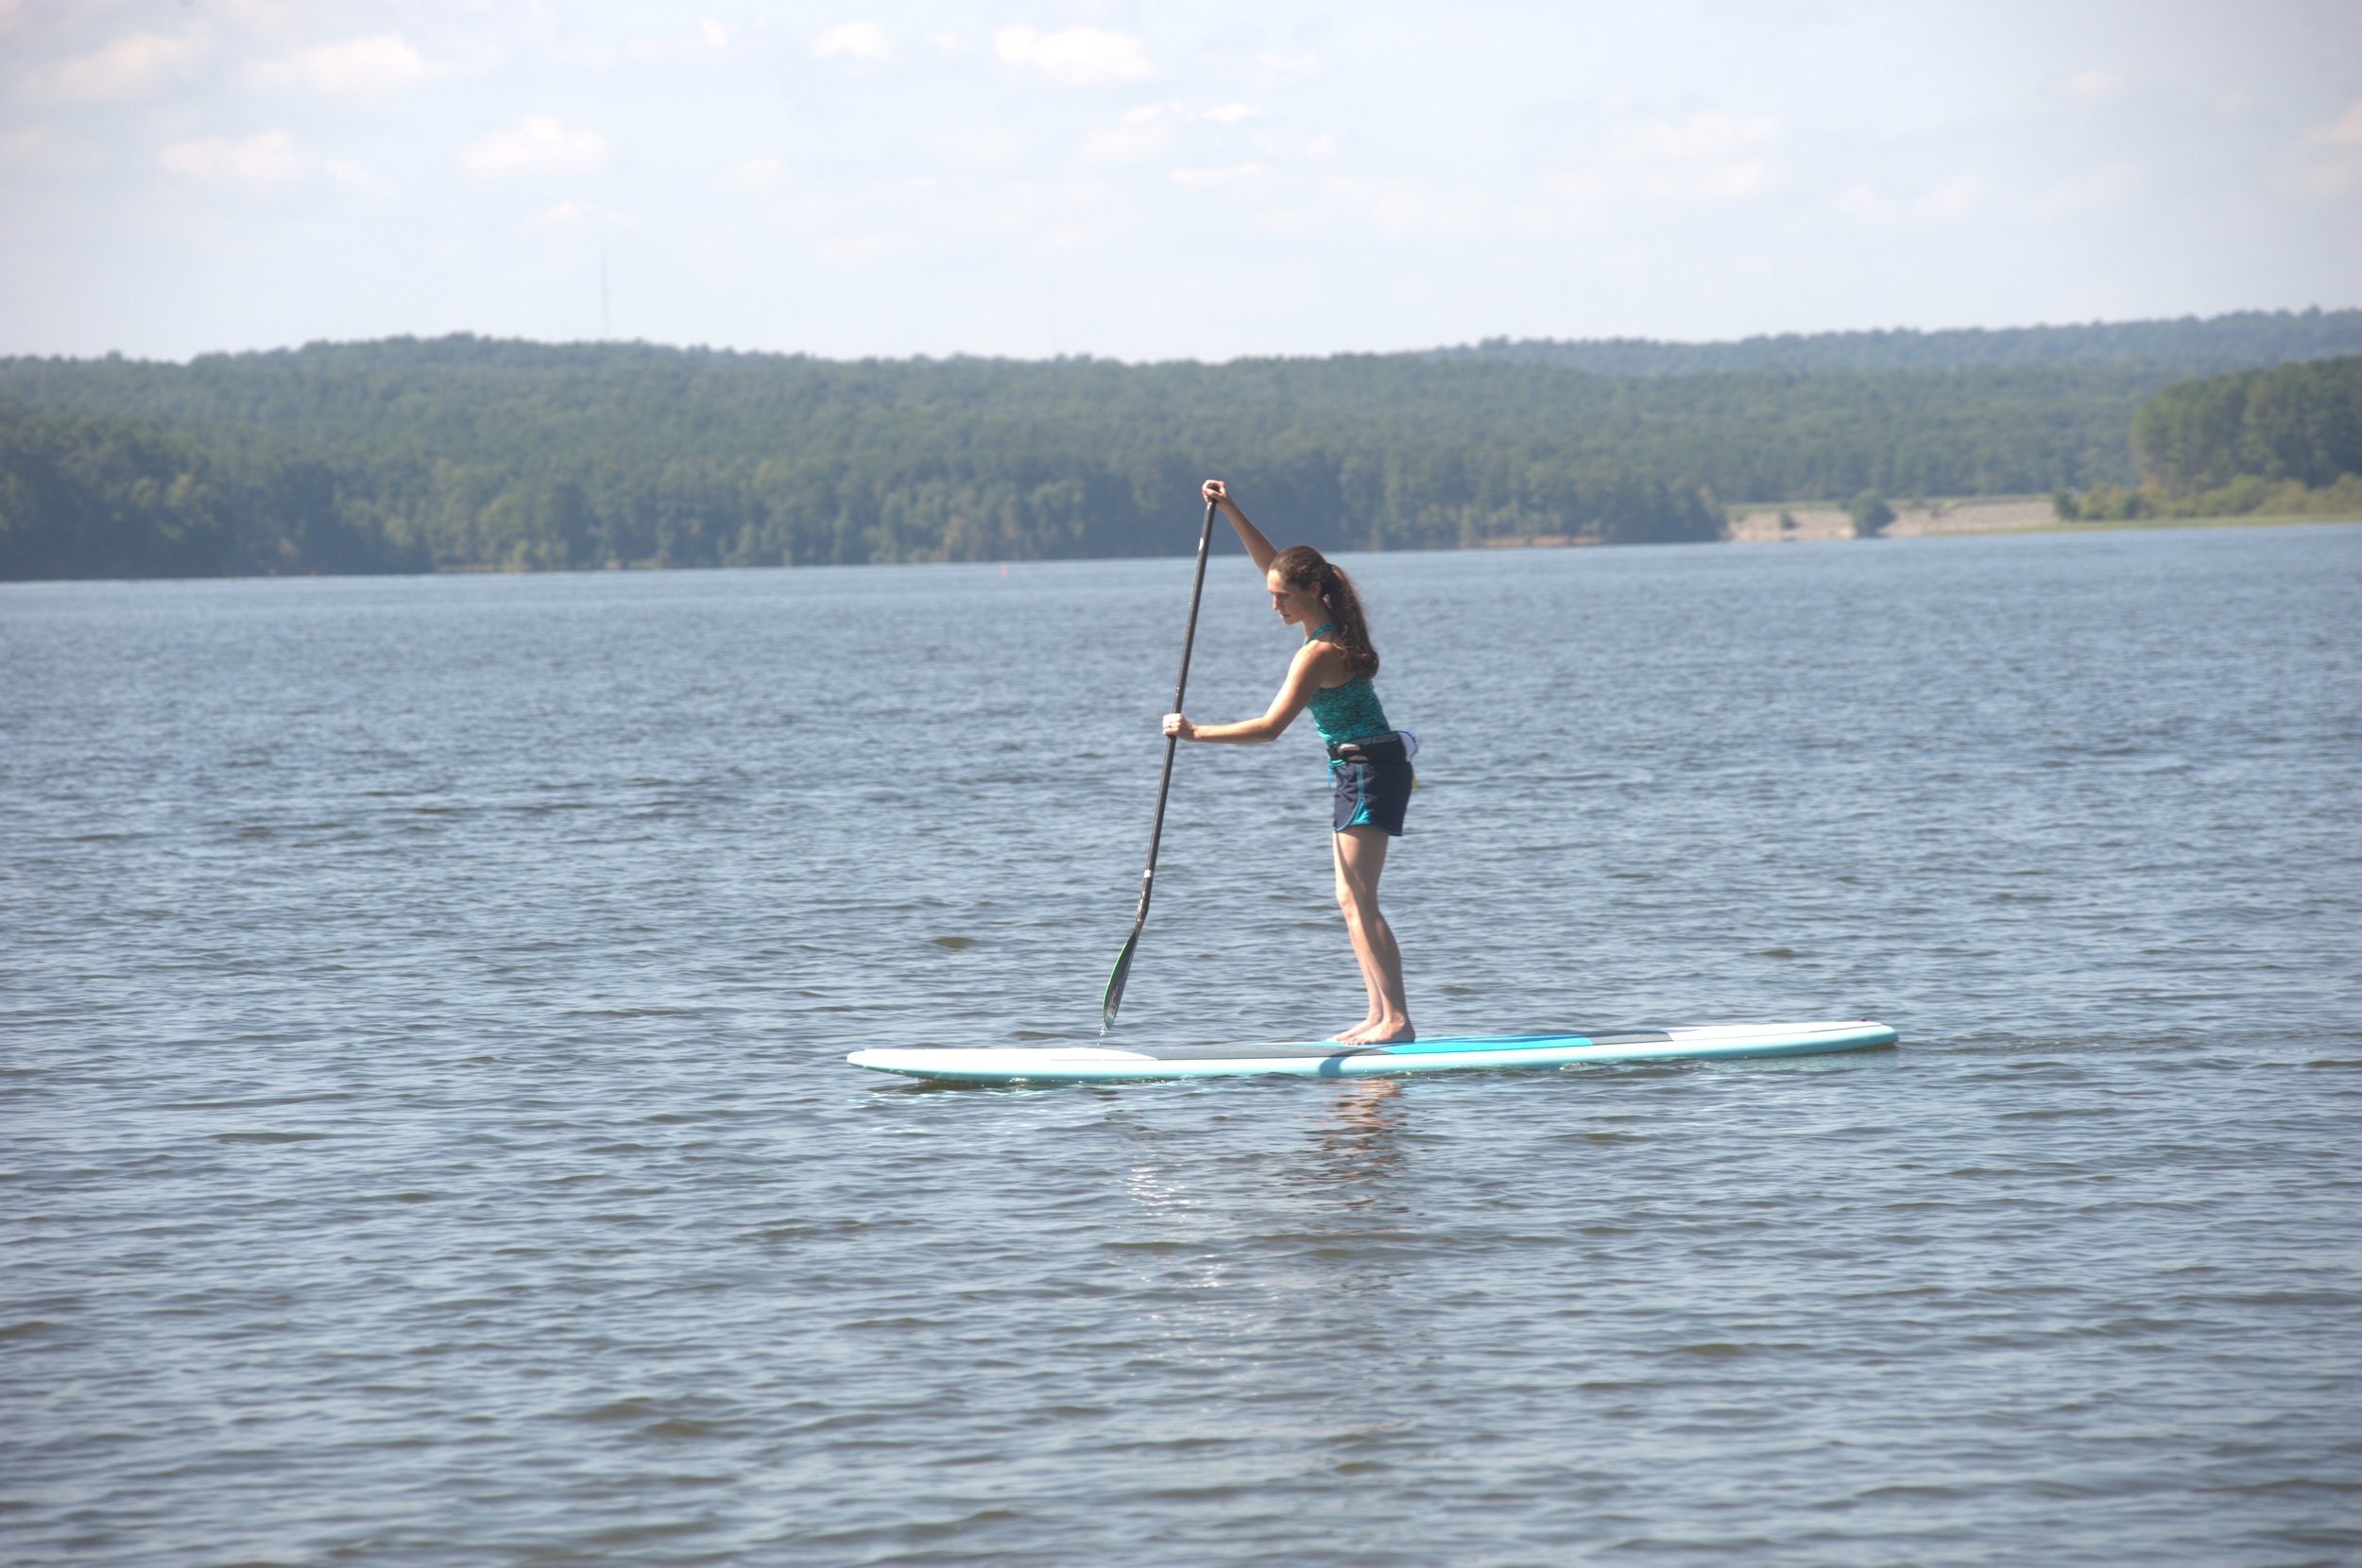 Always hold the paddle so the blade is angled away from you (toward the nose of the board).